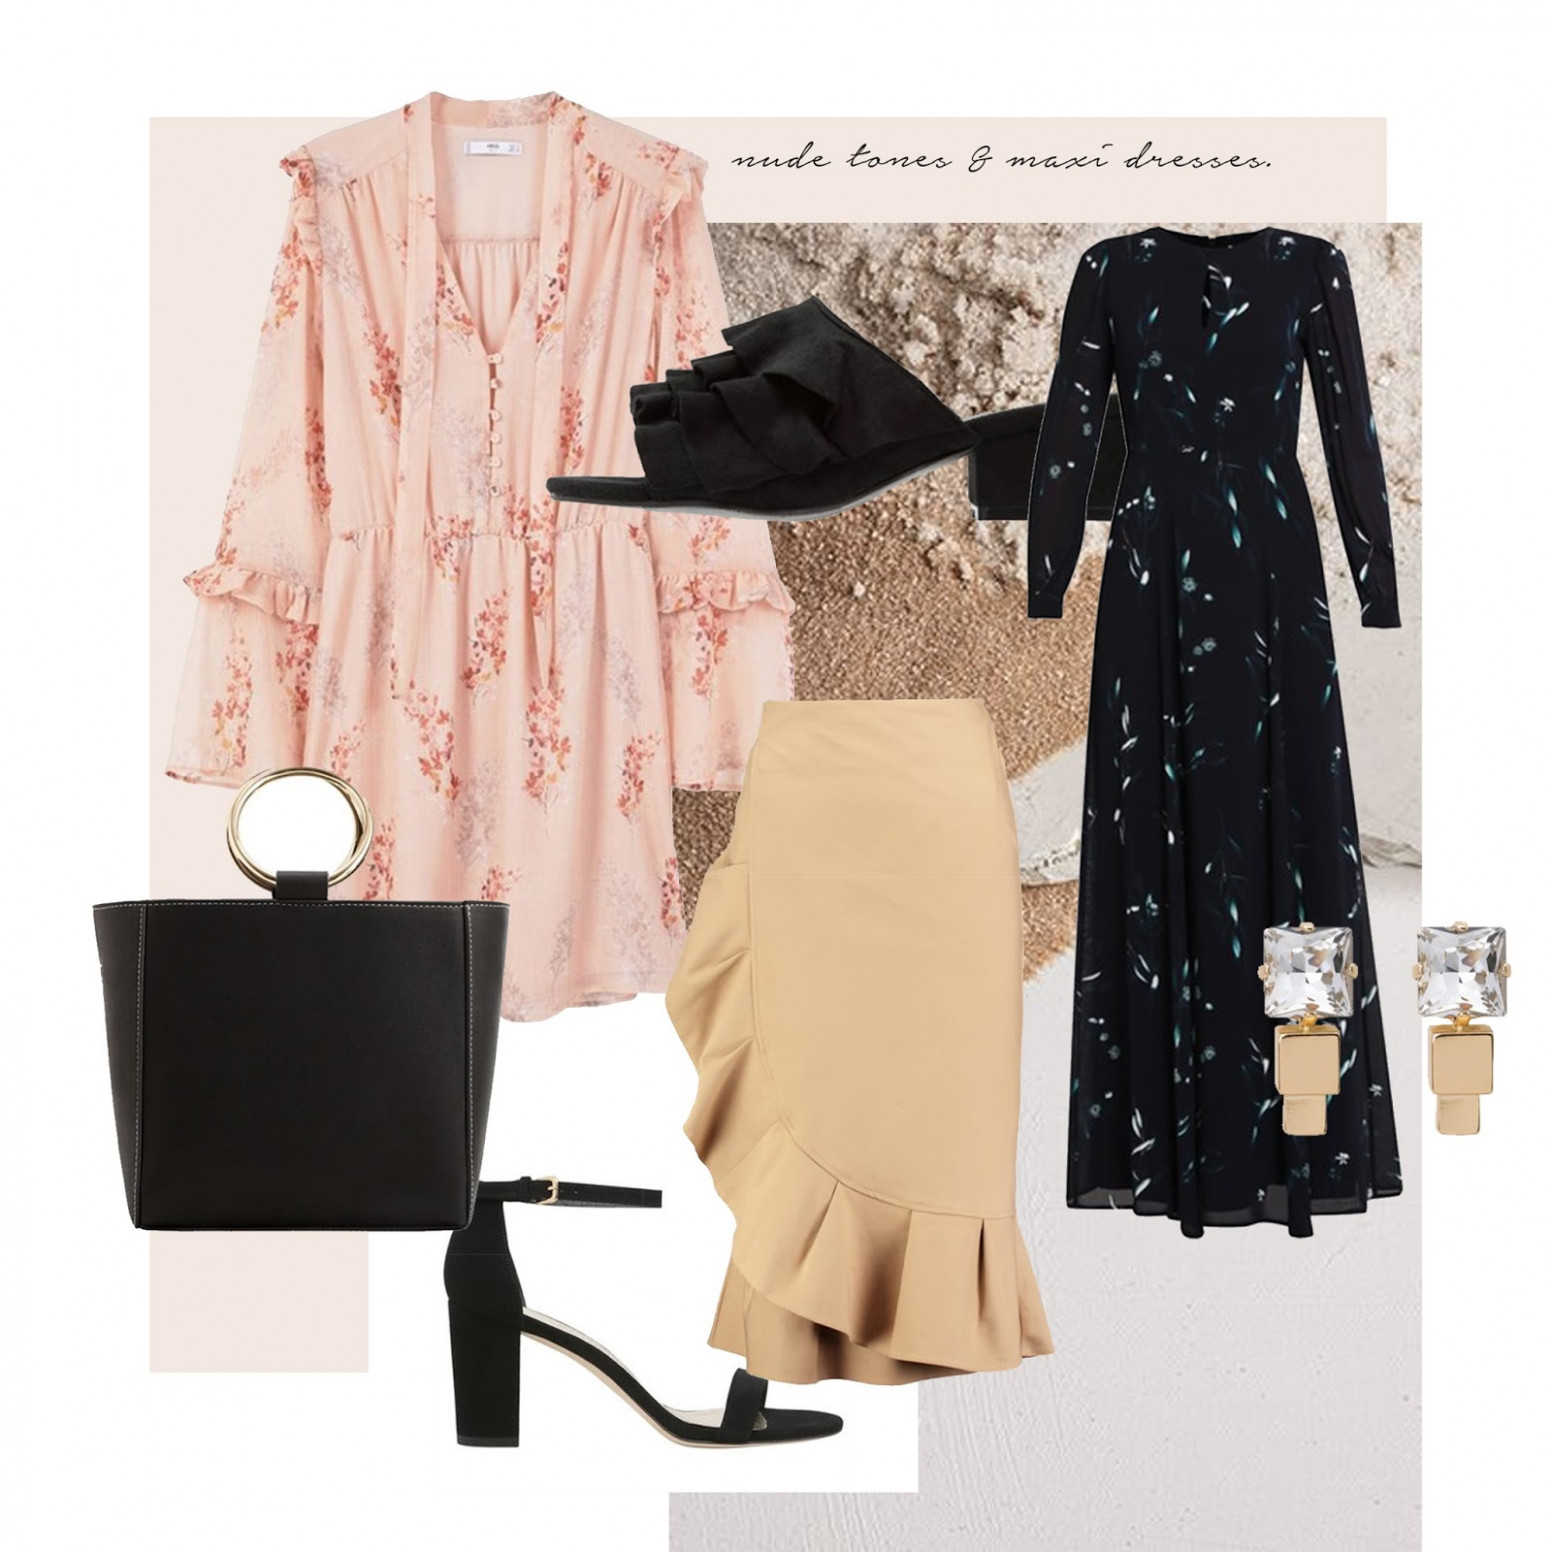 outfit / dresscode taufe let them eat cotton candy outfit zur taufe